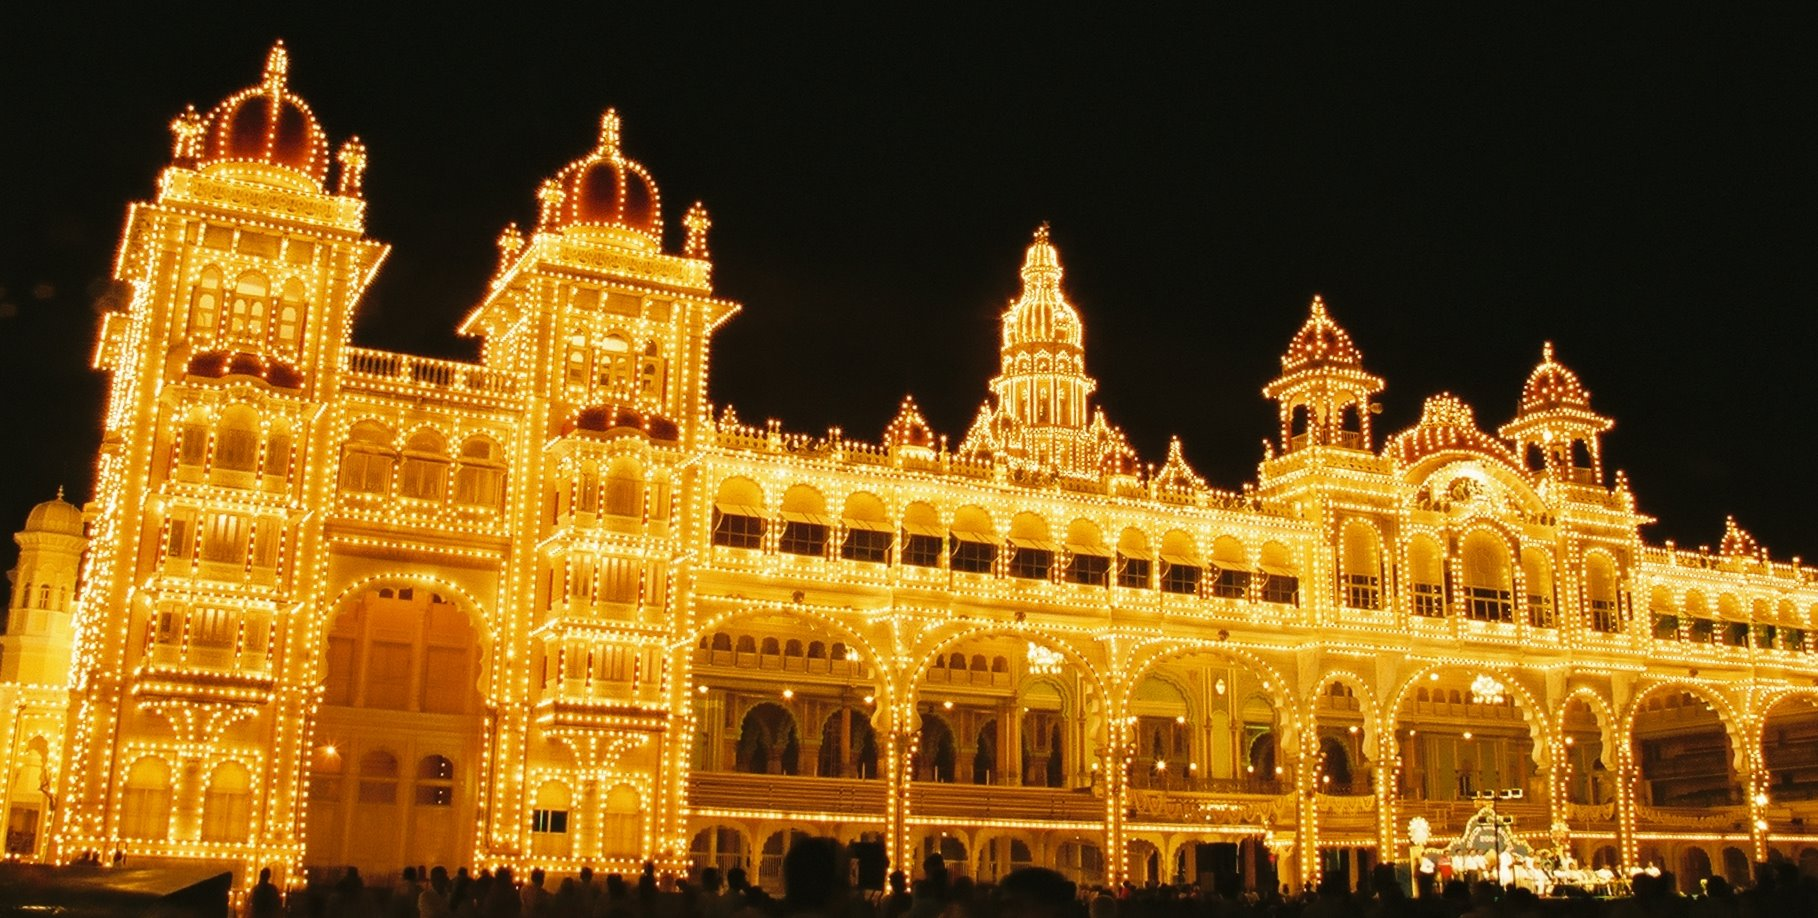 During the entire ten-day celebrations, the Mysuru Palace is lit up decked in colourful lights. Photo courtesy: Wikimedia